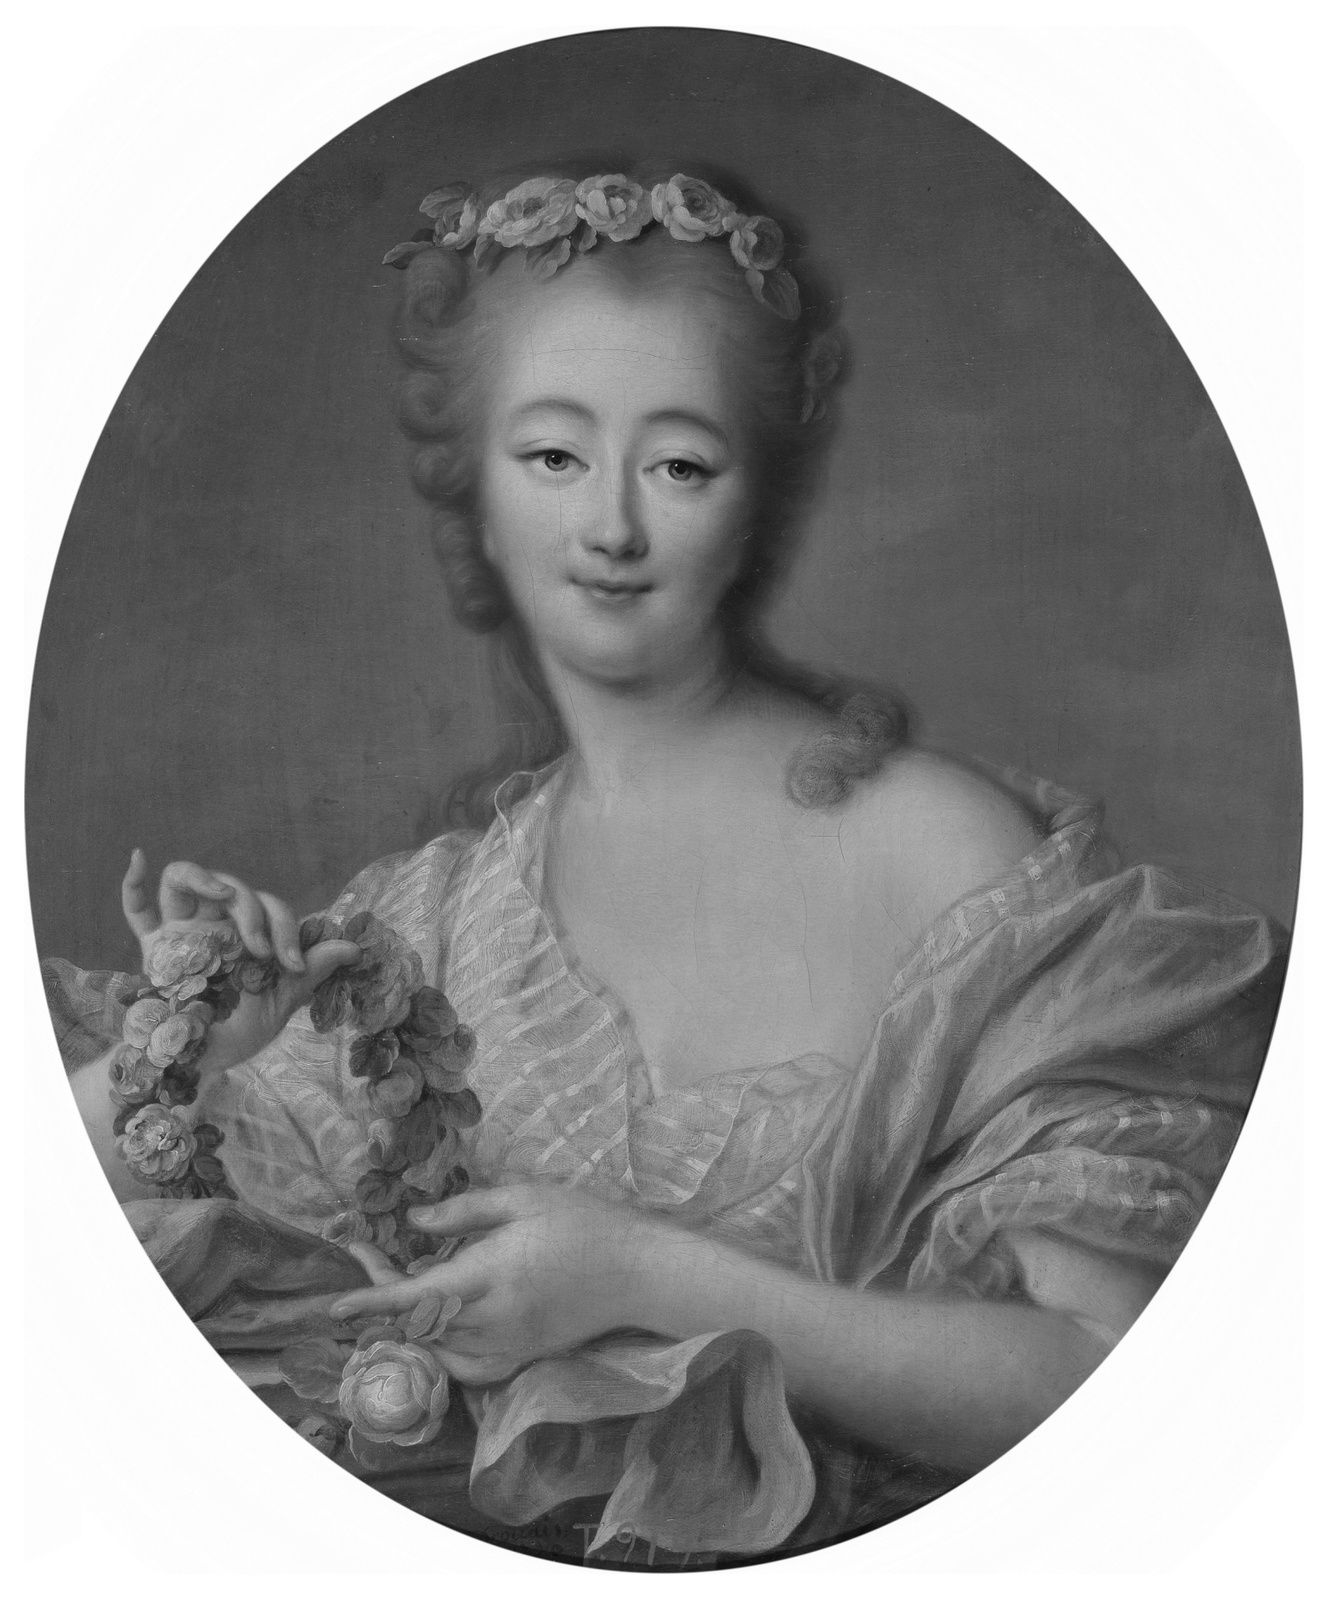 Scandale à la Cour : Comtesse du Barry, de courtisane du tout Paris à favorite de Louis XV